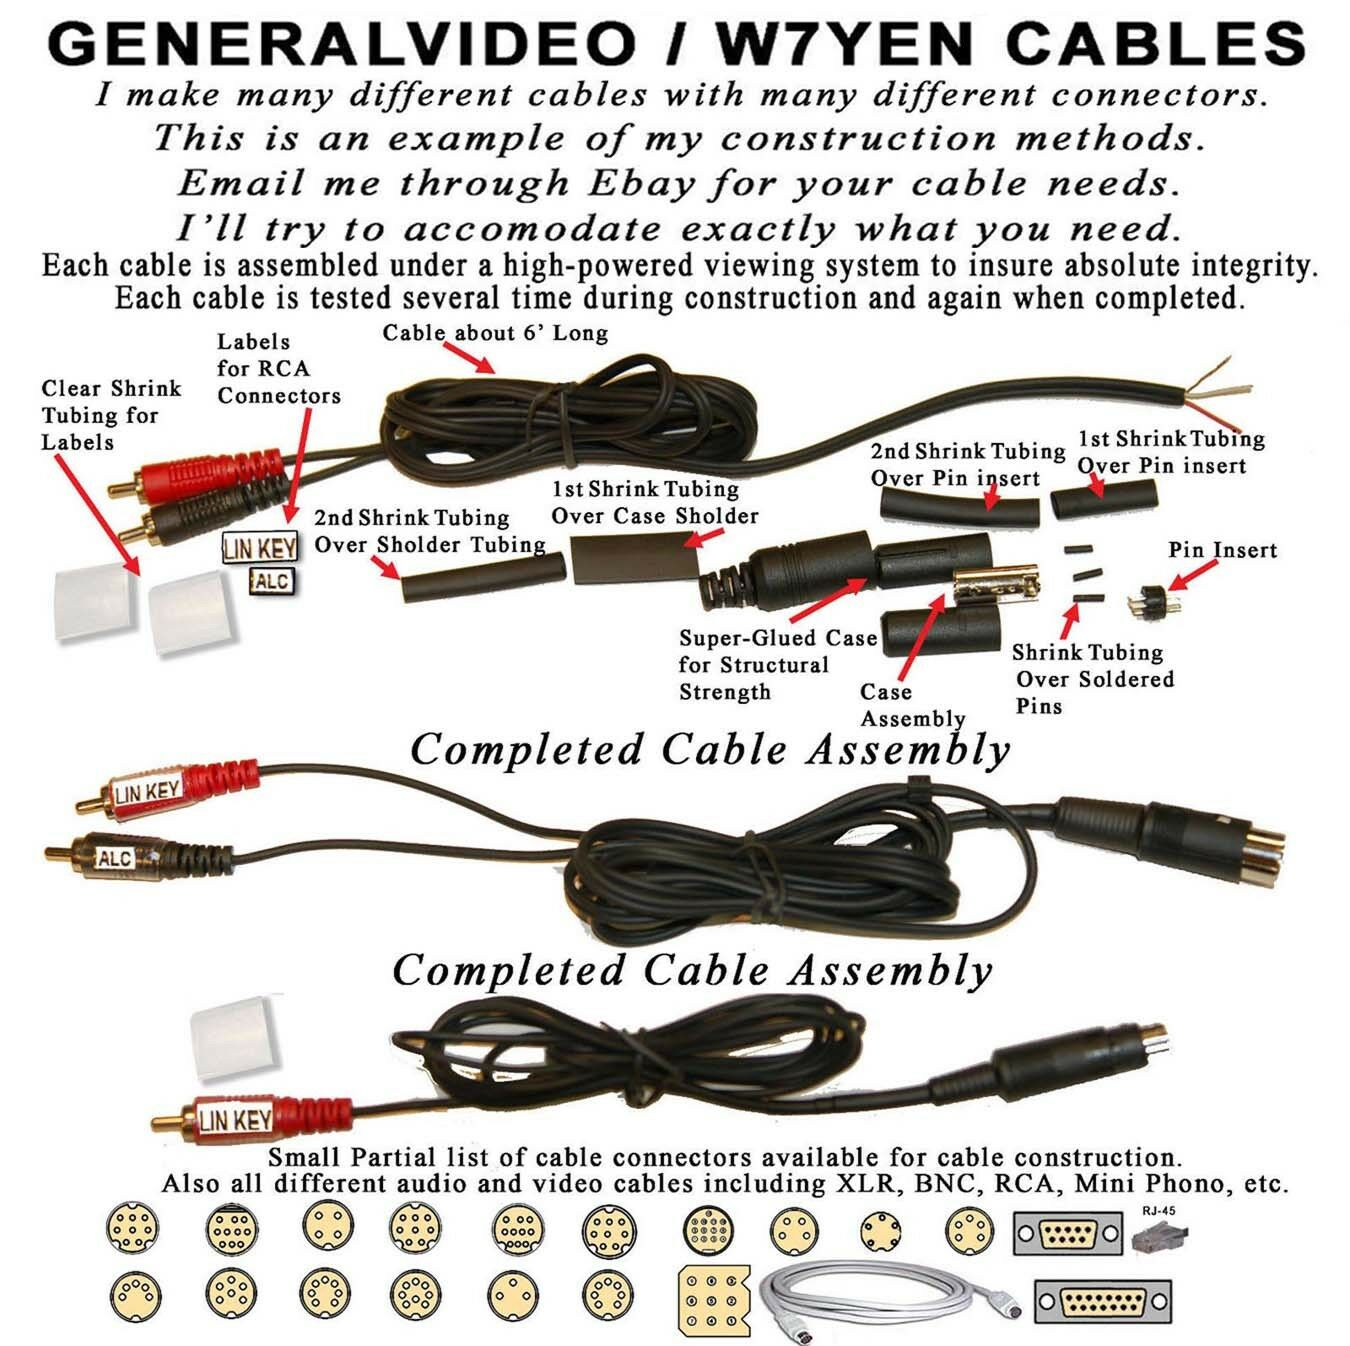 details about 10-pin mini-din cable with keying and alc for yaesu ft-950 ft- 450 ft-dx1200